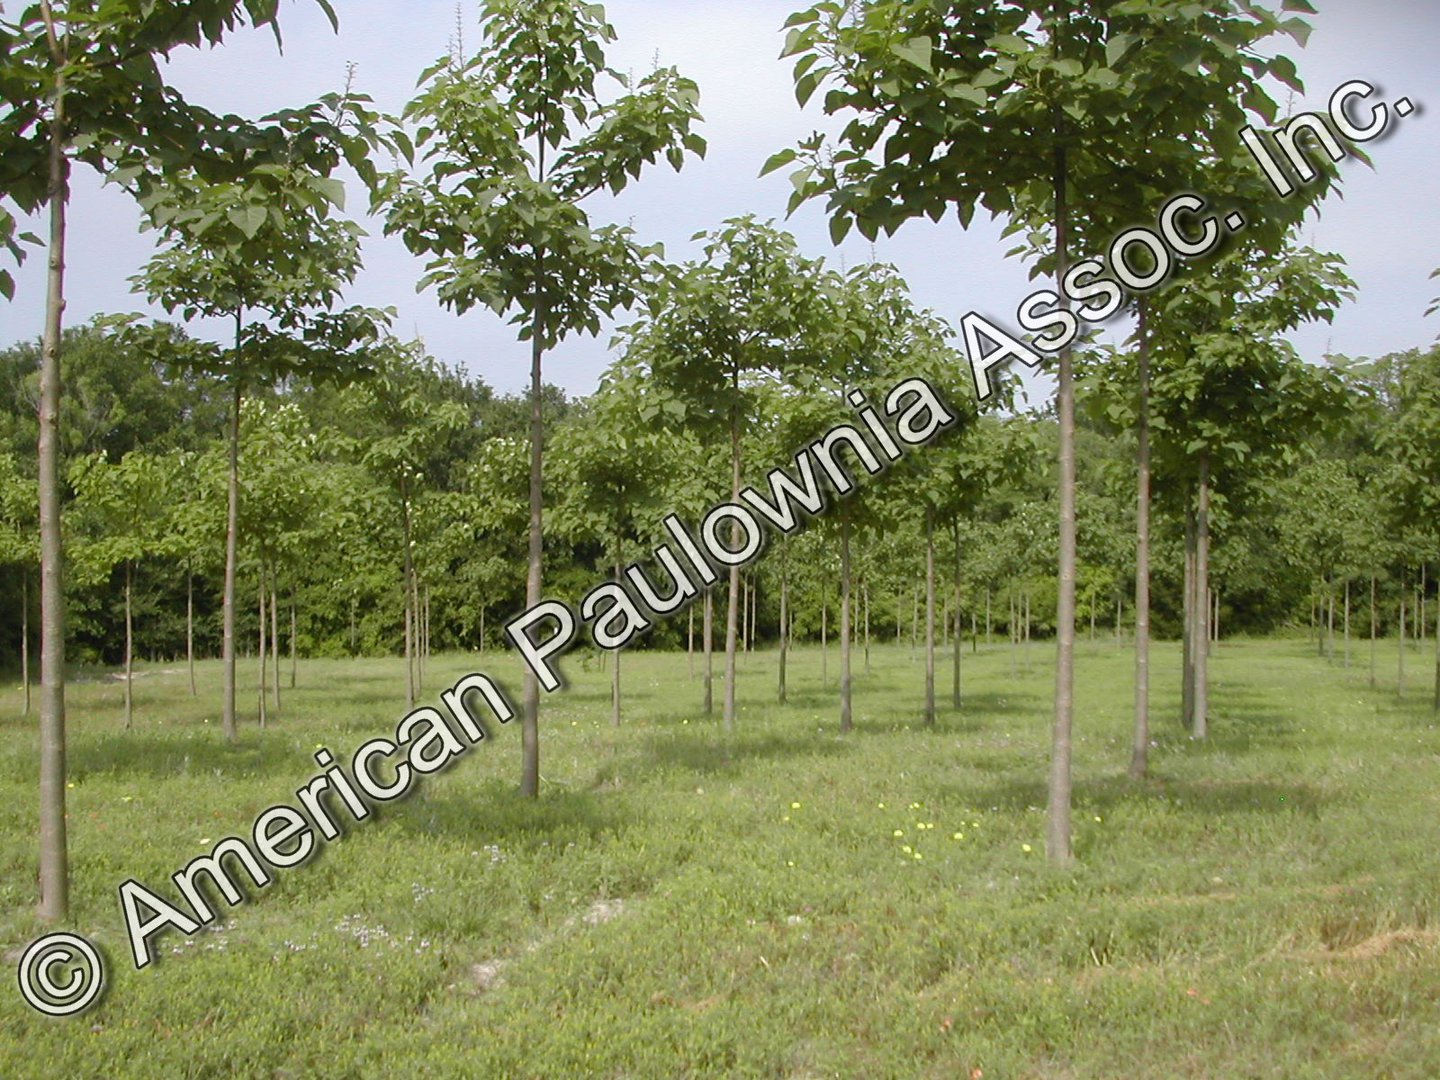 Rows of Young Paulownia Trees